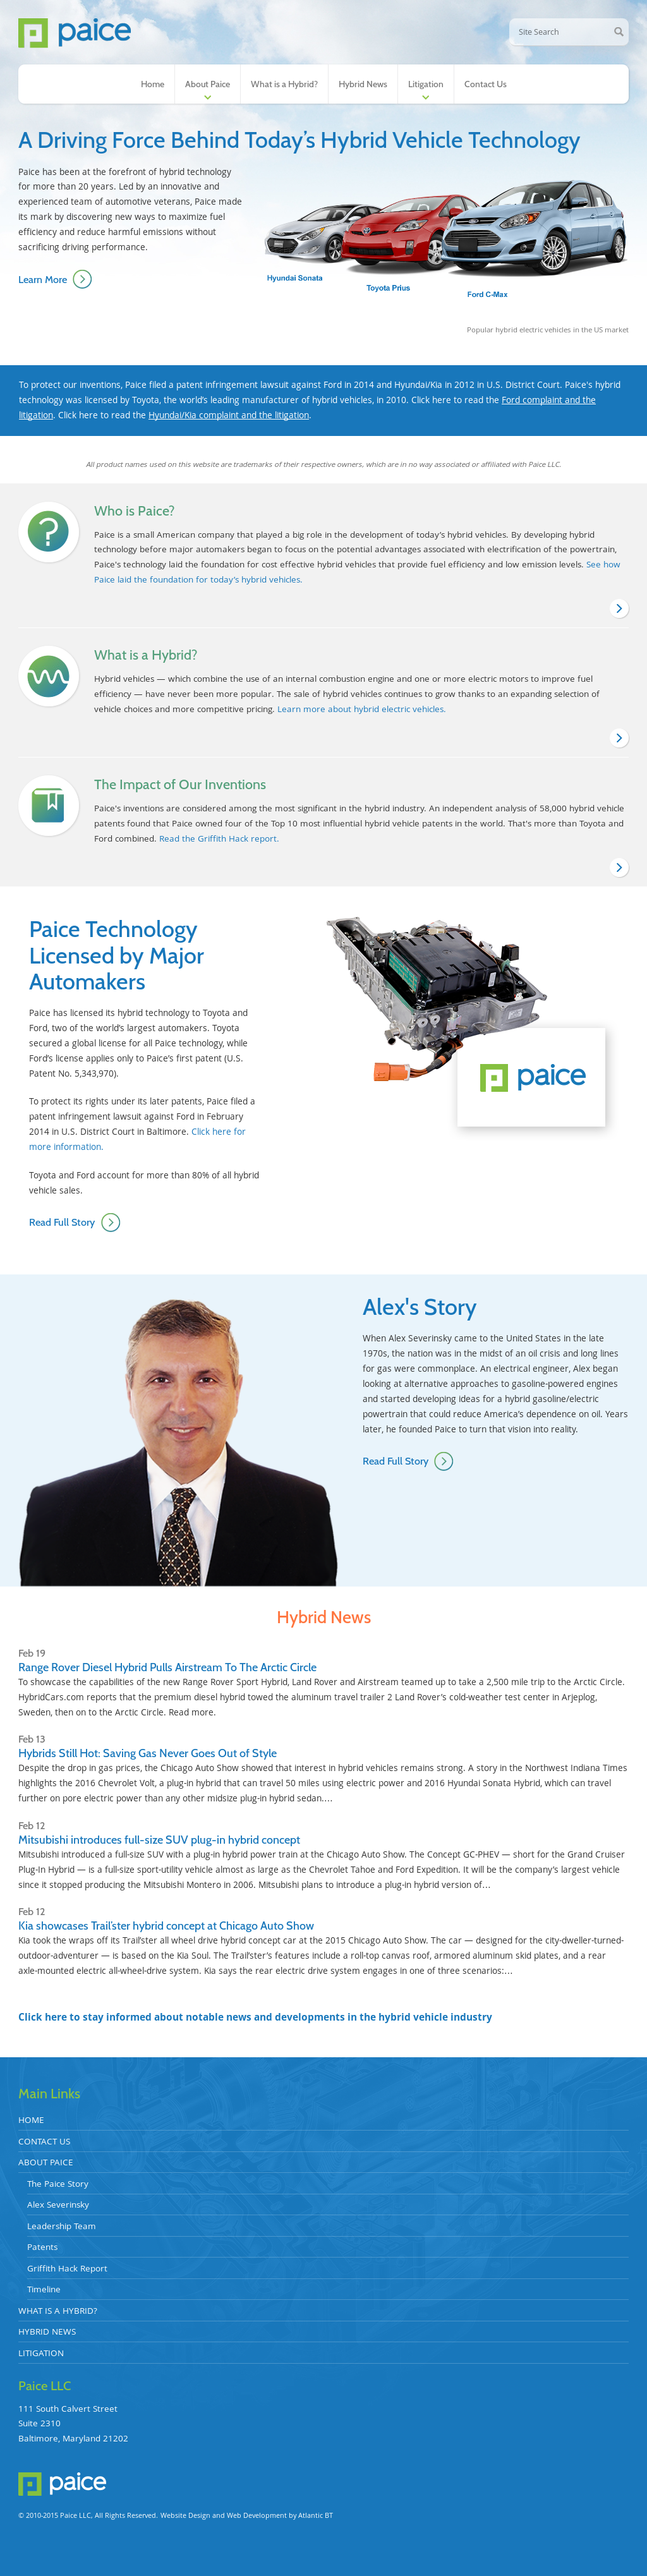 Paice Competitors, Revenue and Employees - Owler Company Profile